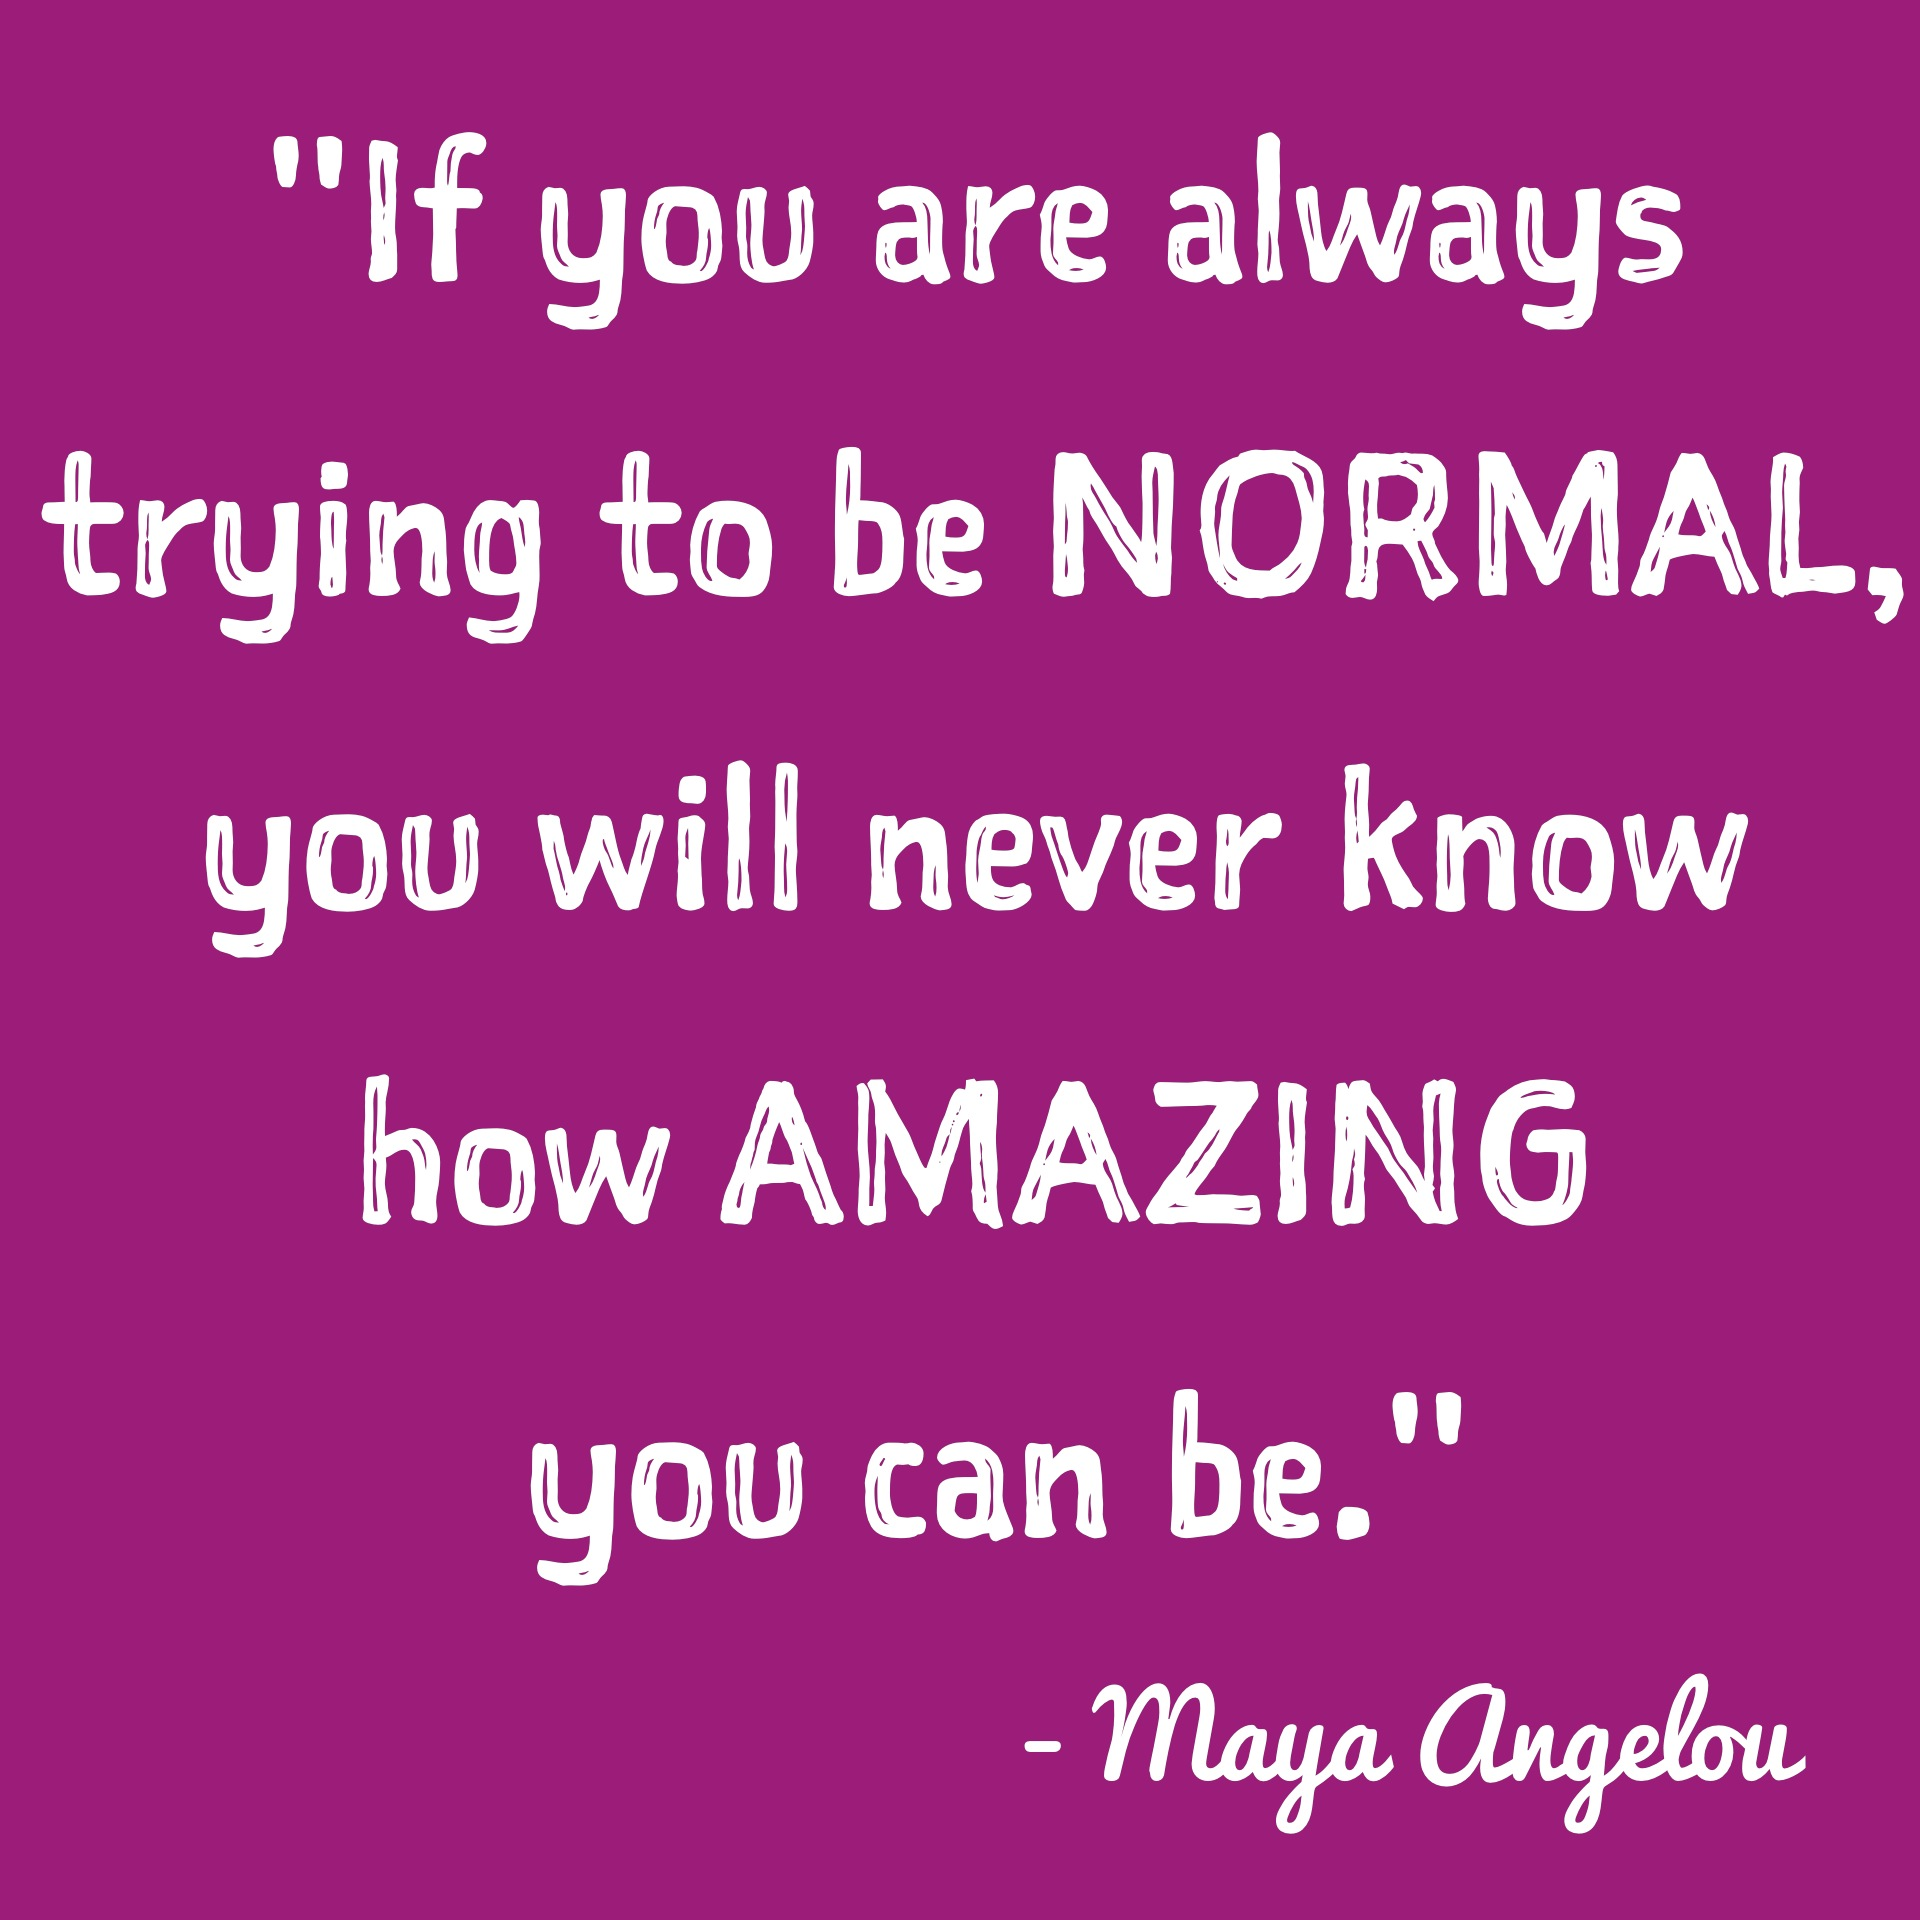 Inspirational Quotes Top 13 Inspirational Quotes Of 2014  11 Normal Is Not Amazing